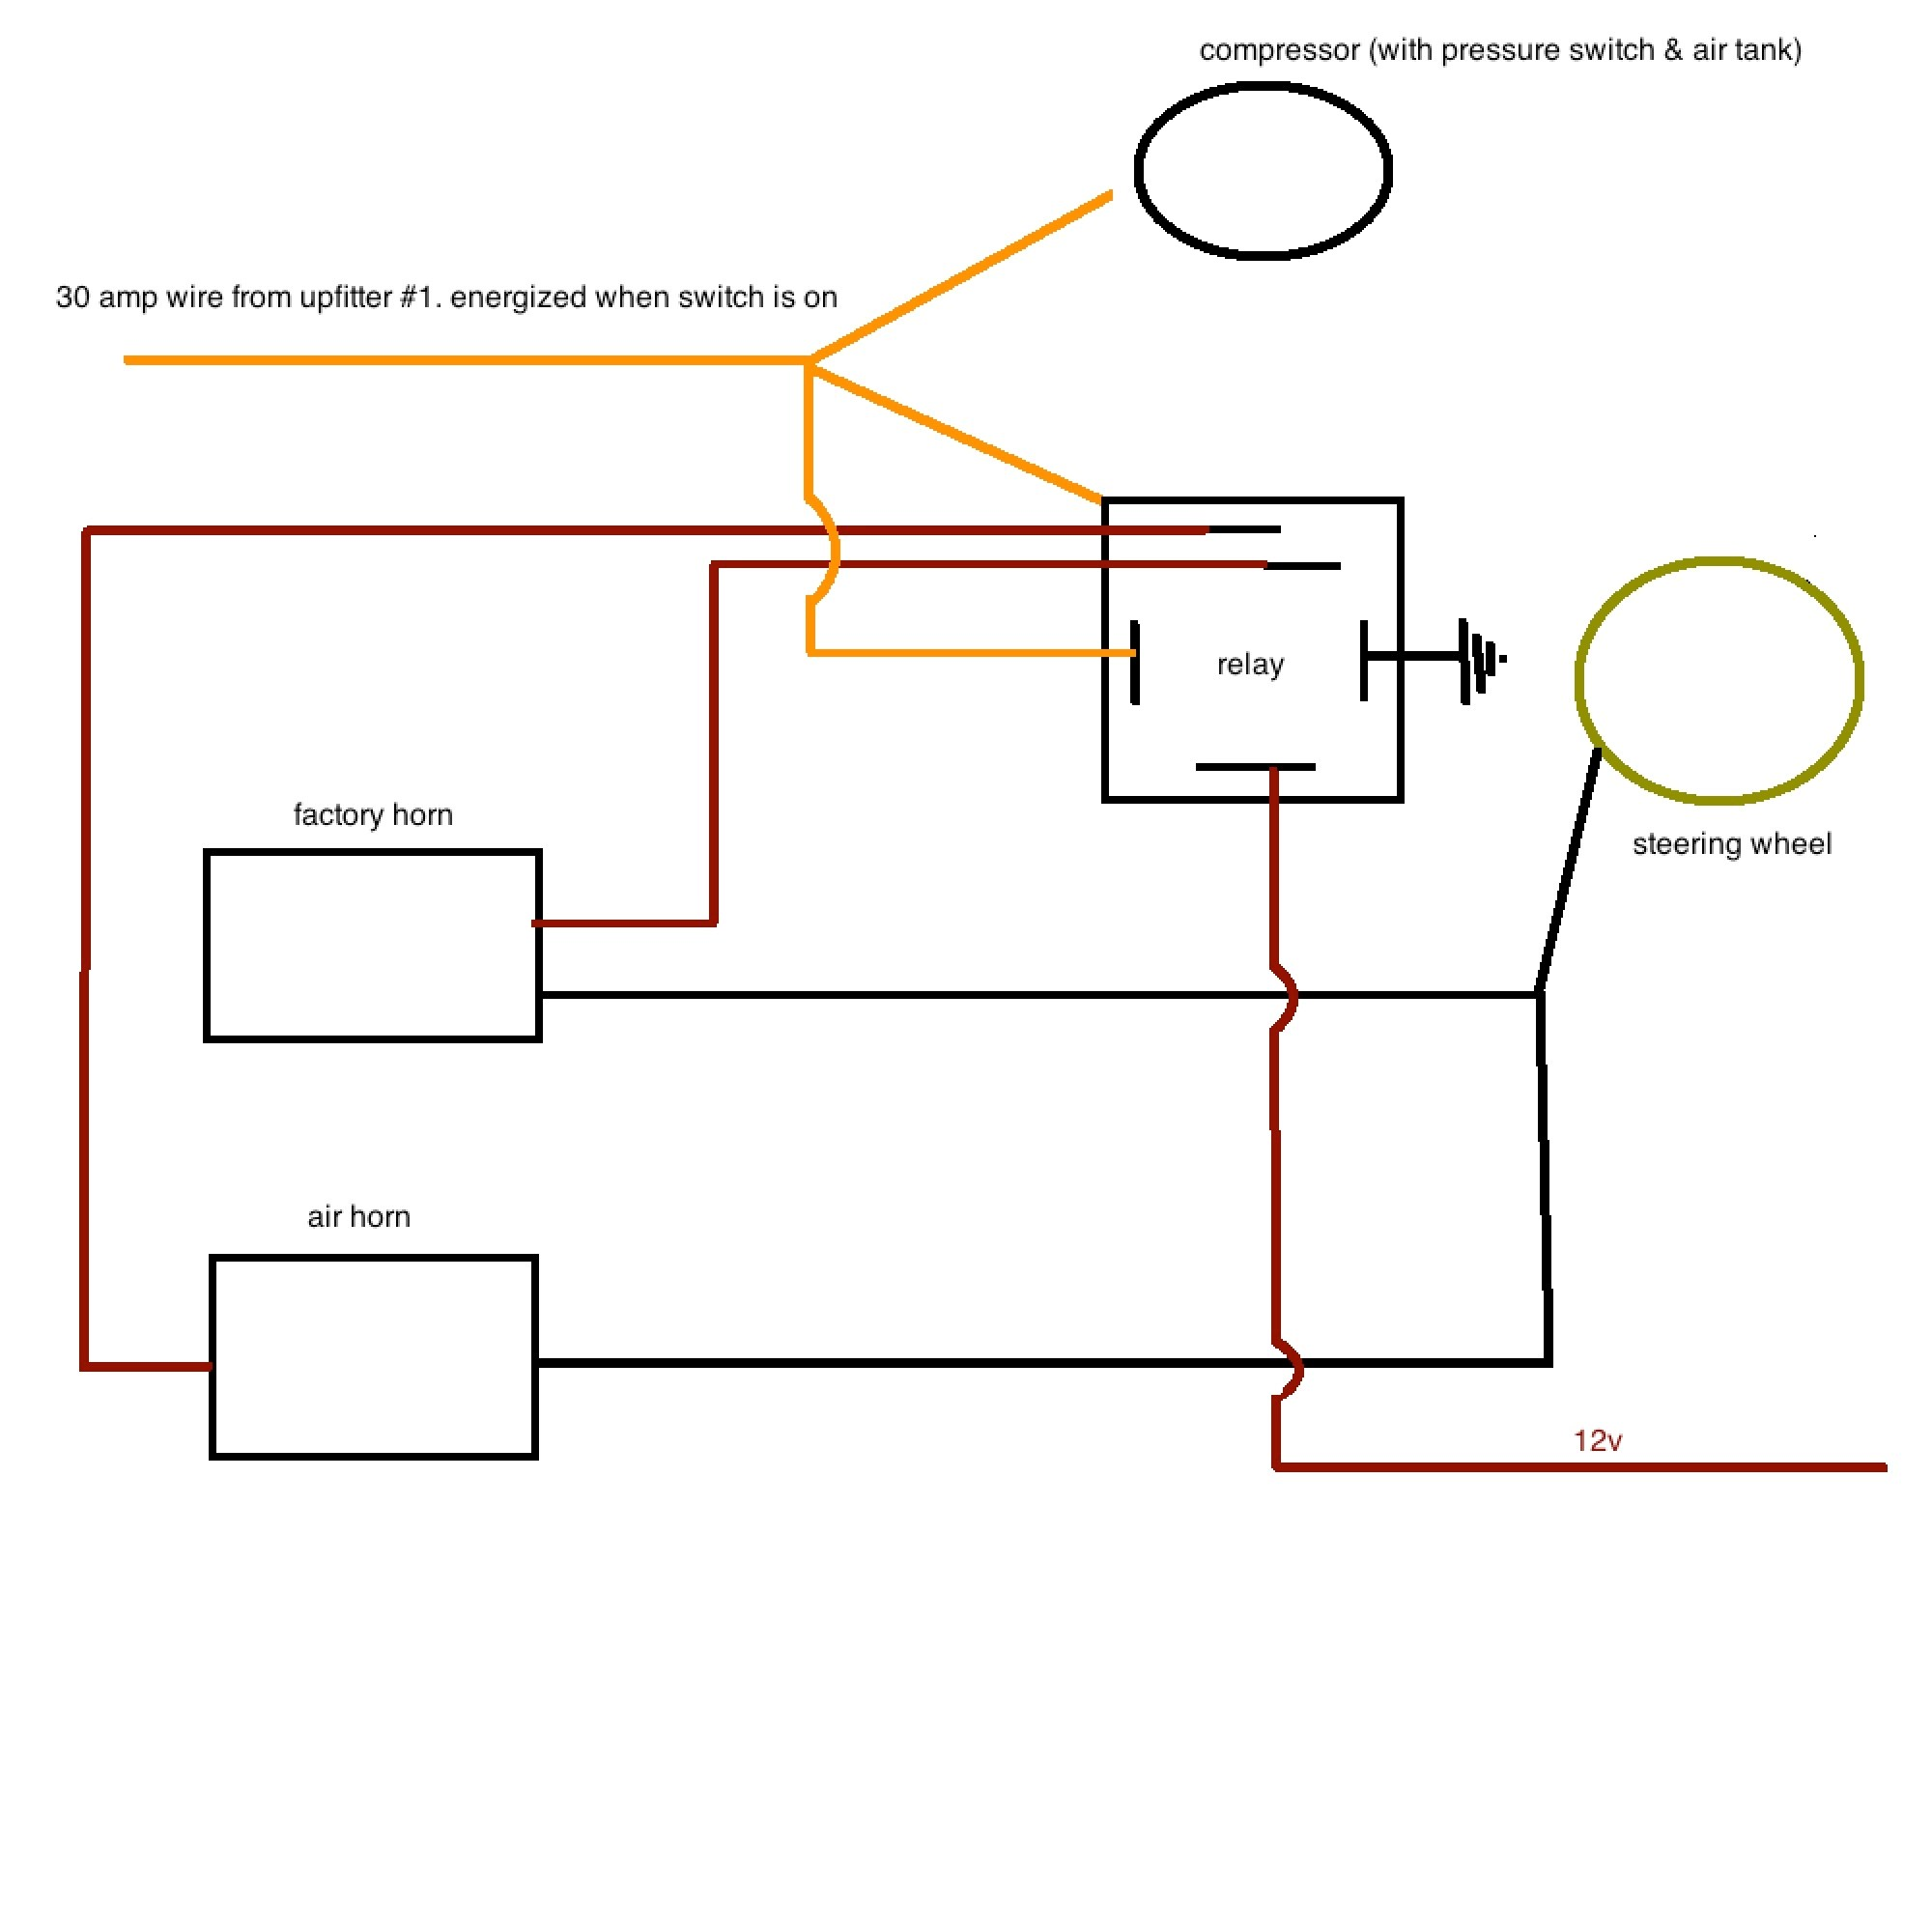 hight resolution of air horn wiring diesel forum thedieselstop com car horn wiring diagram click image for larger version